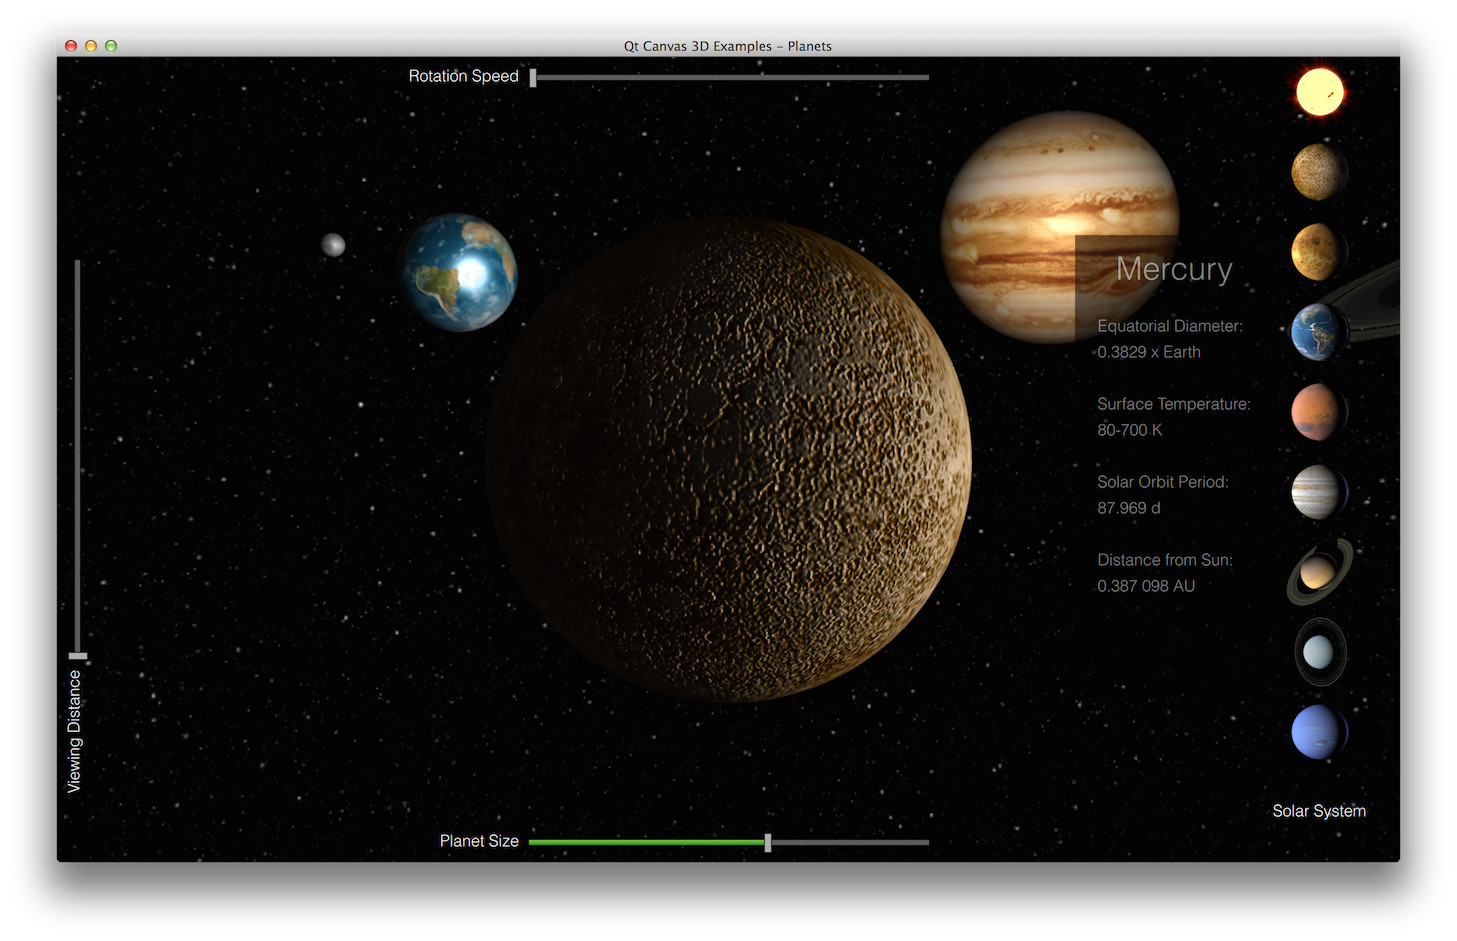 Planets example qt canvas 3d 510 the planets example demonstrates how to implement an application that combines the use of threejs library based canvas3d rendering with qt quick 2d baditri Image collections